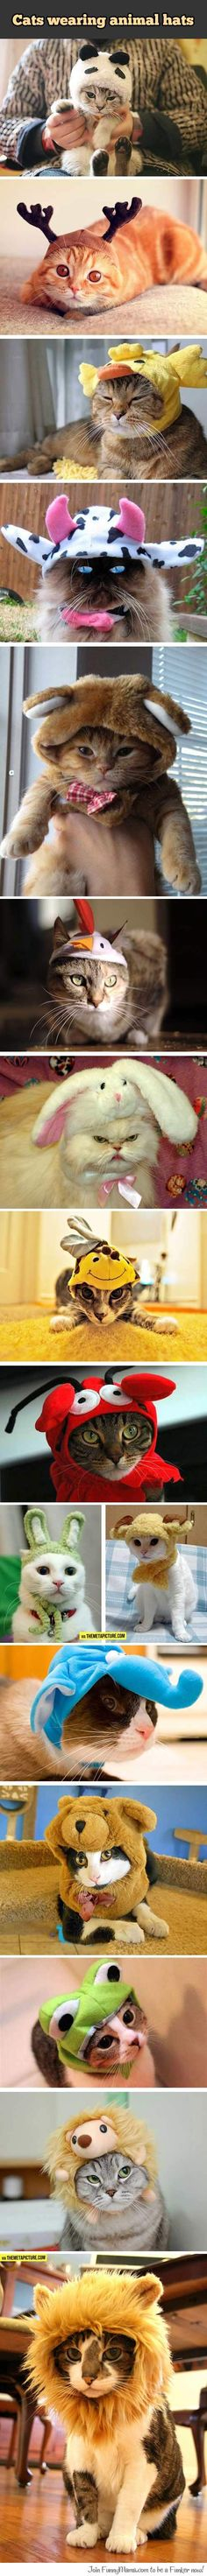 Cats wearing animal hats...